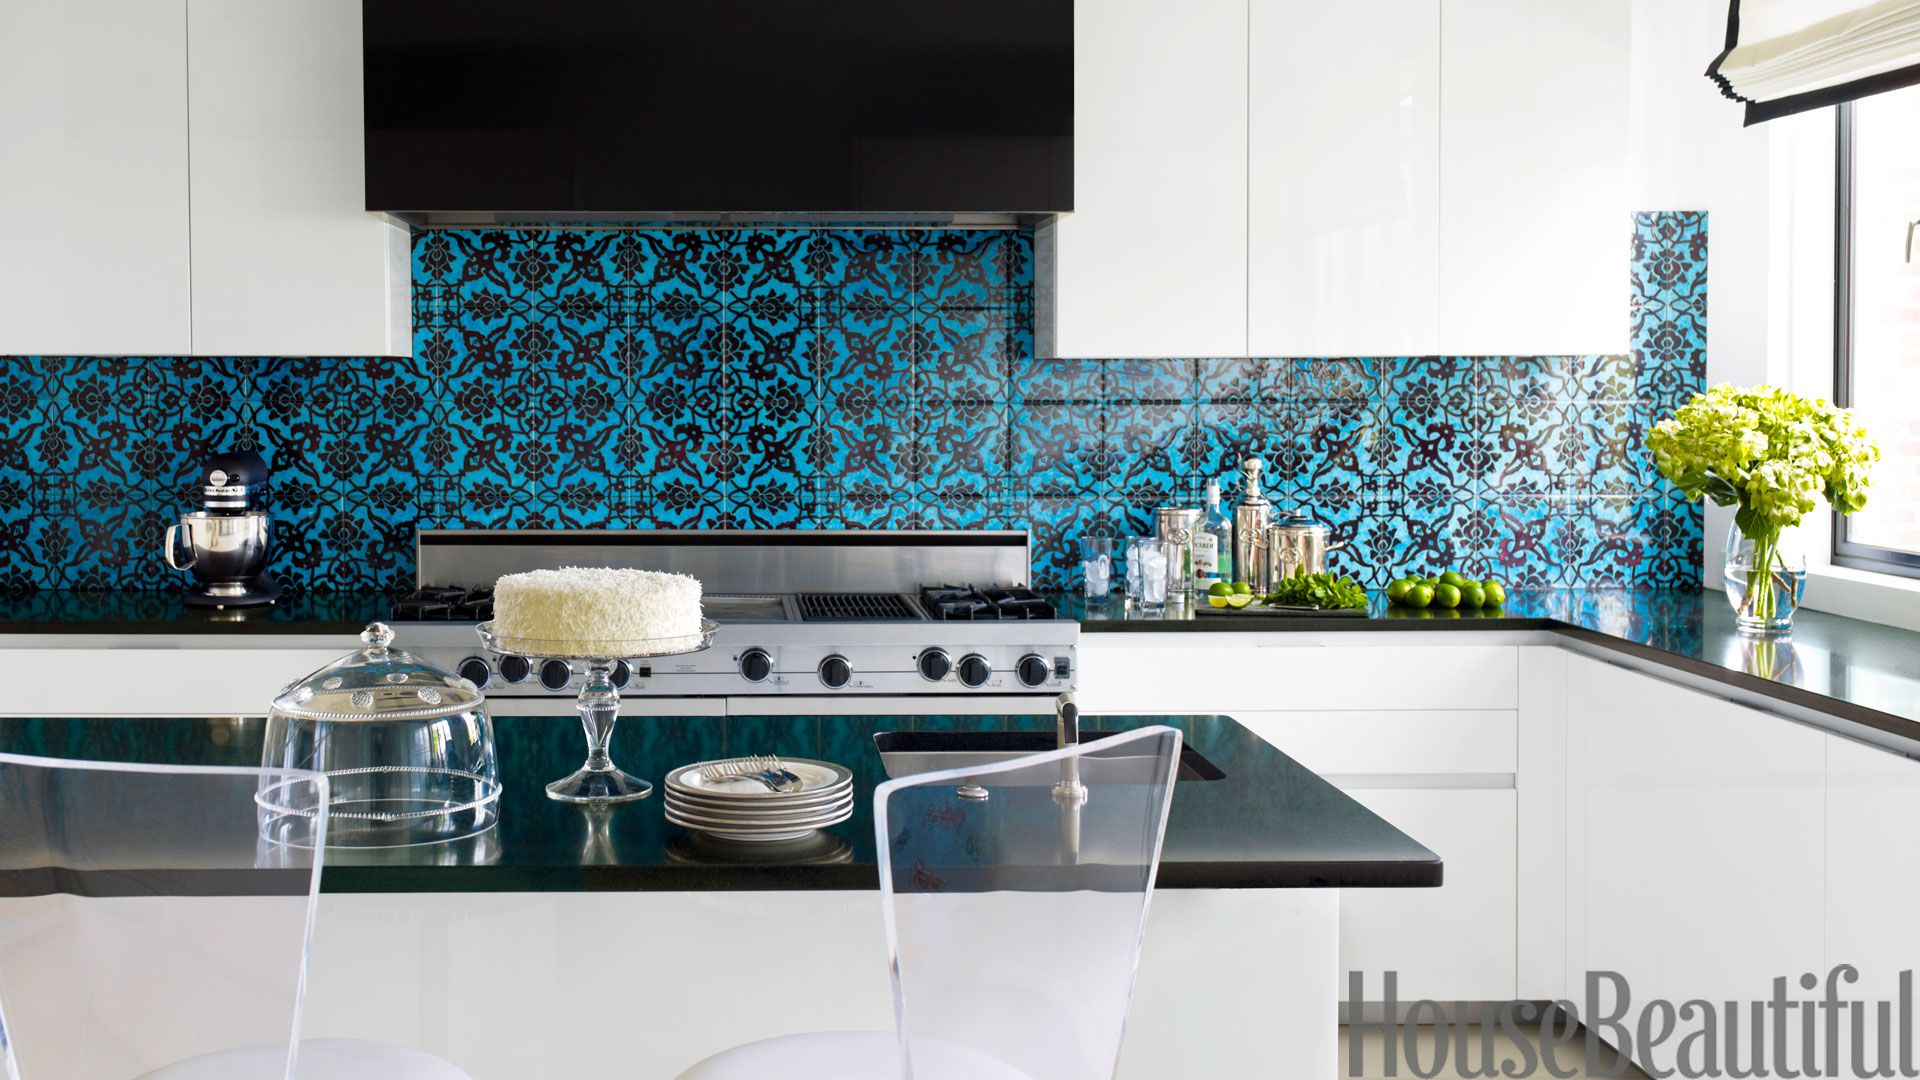 53 best kitchen backsplash ideas tile designs for kitchen backsplashes dailygadgetfo Images